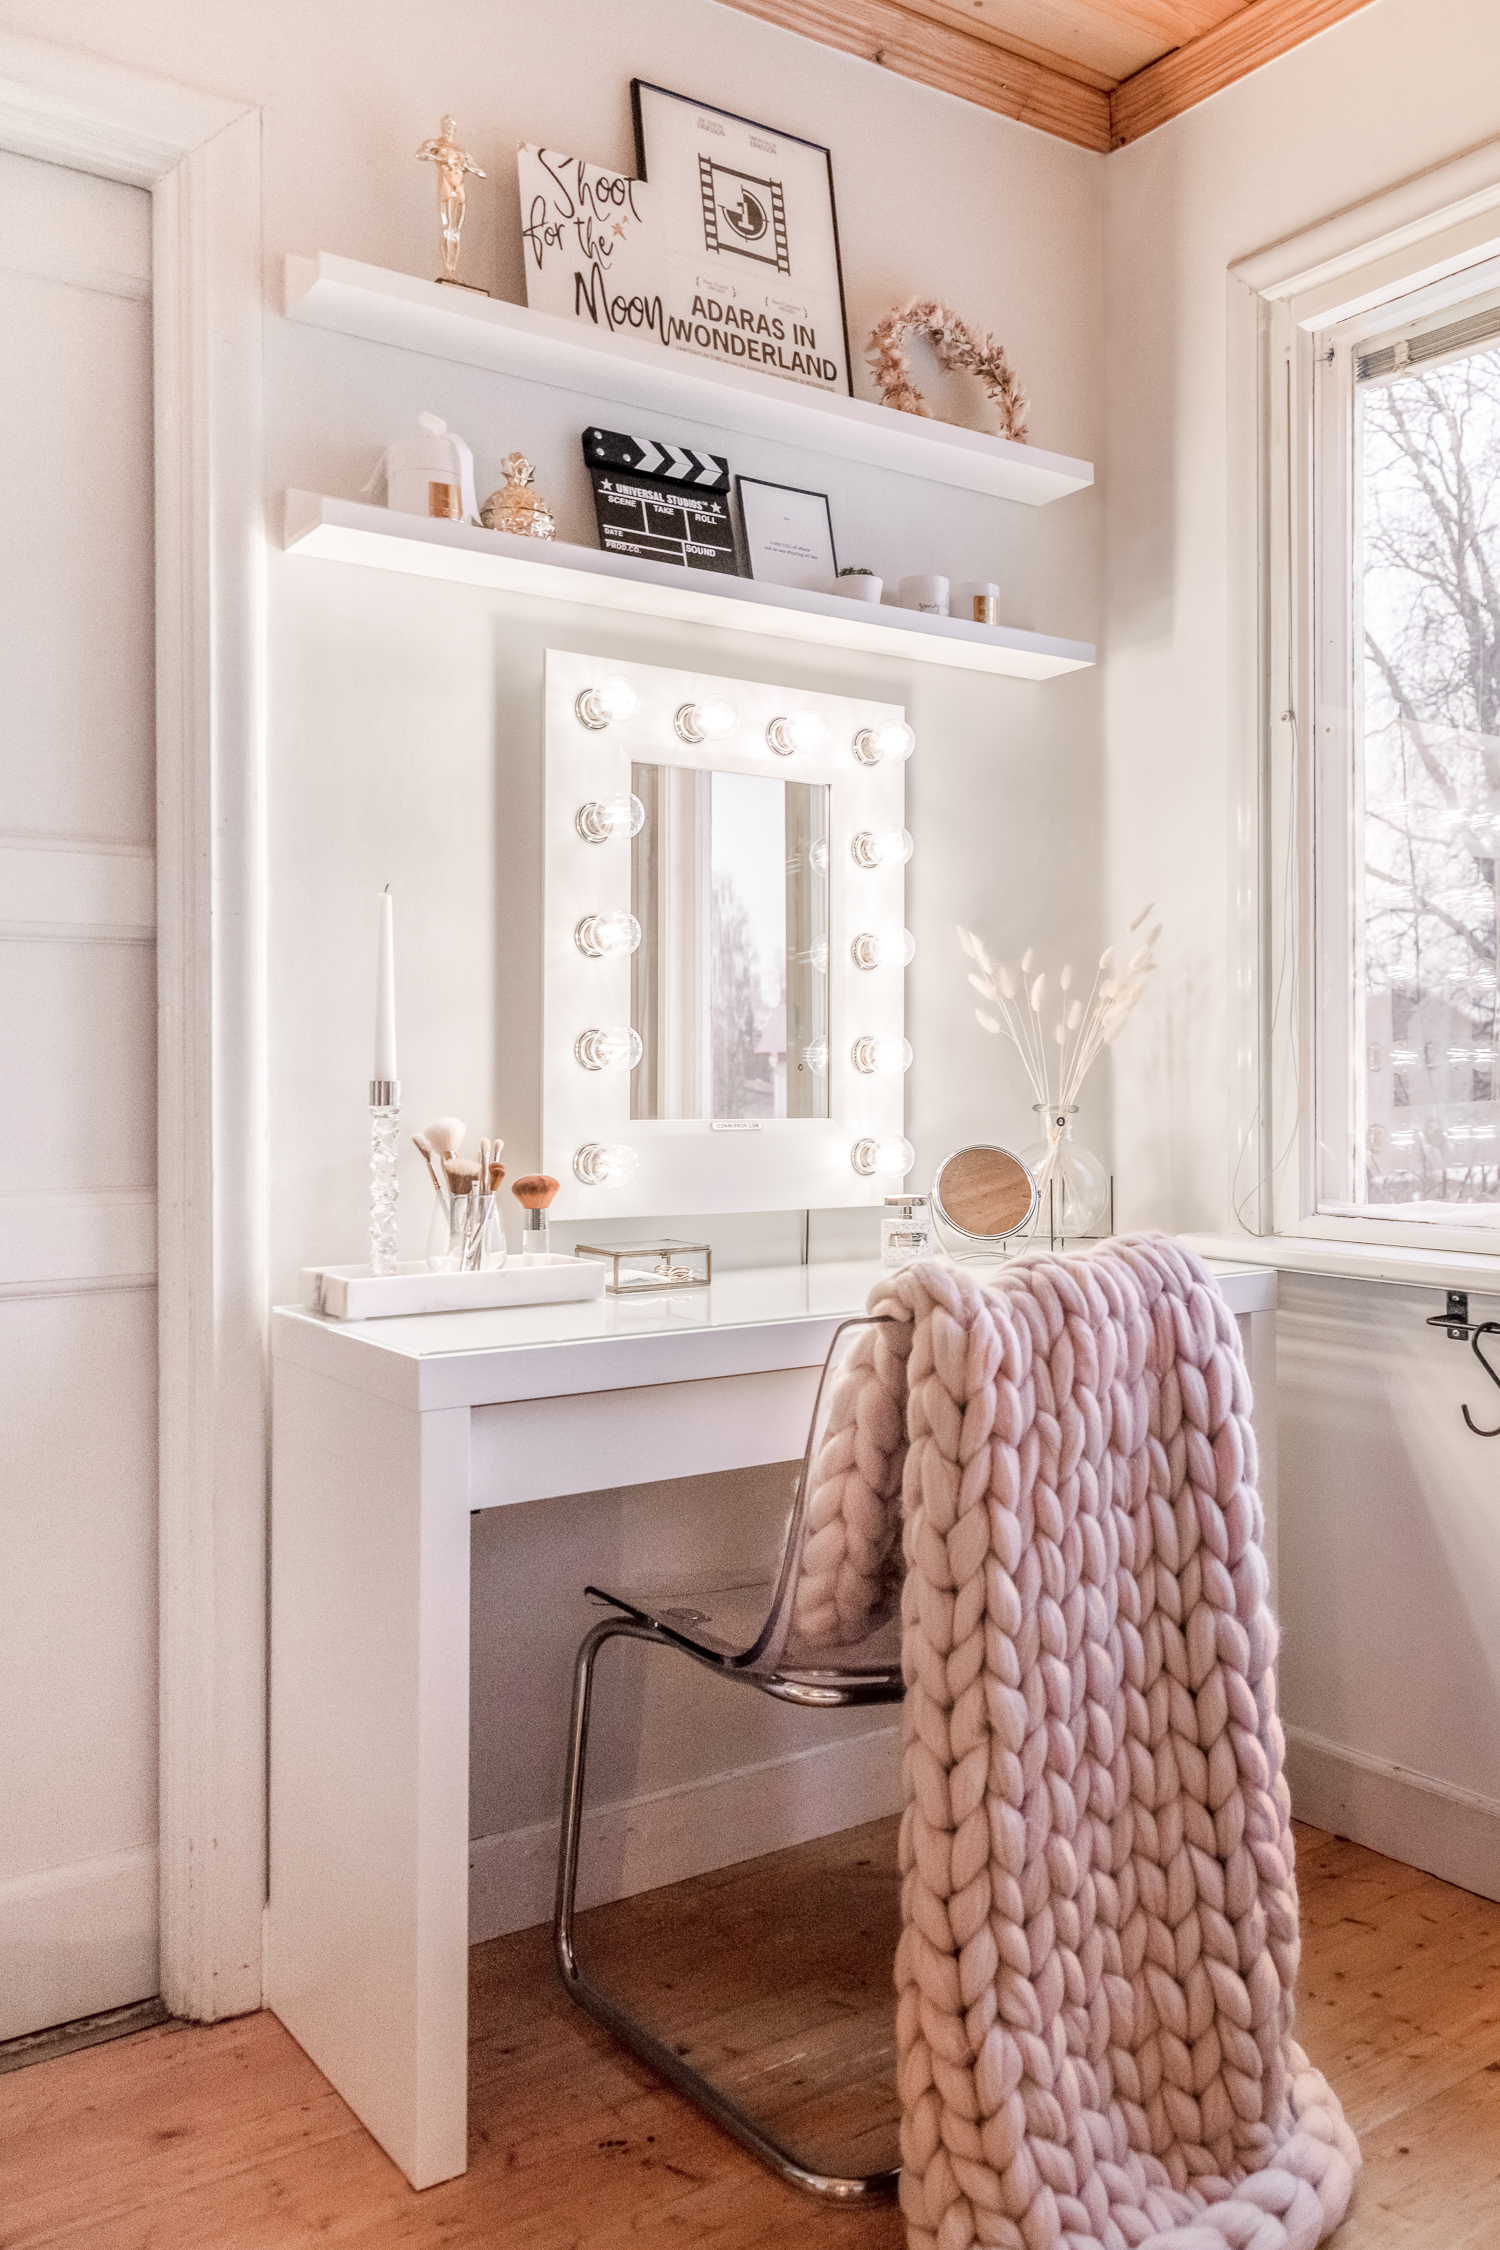 Chunky Knit Throw Blanket & Makeup Mirror with Lights